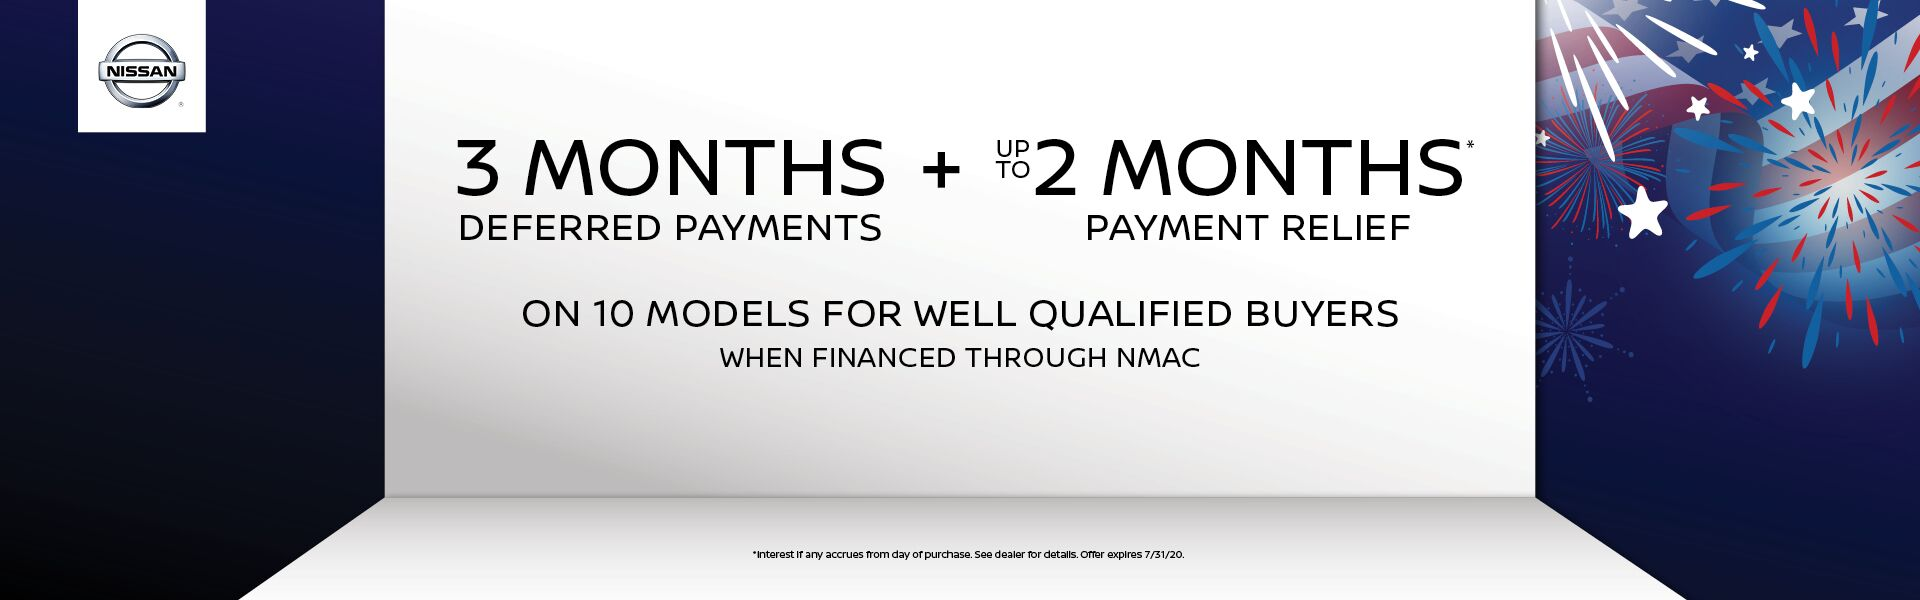 3 Month Deferred Payments and up to 2 Months Payment Relief